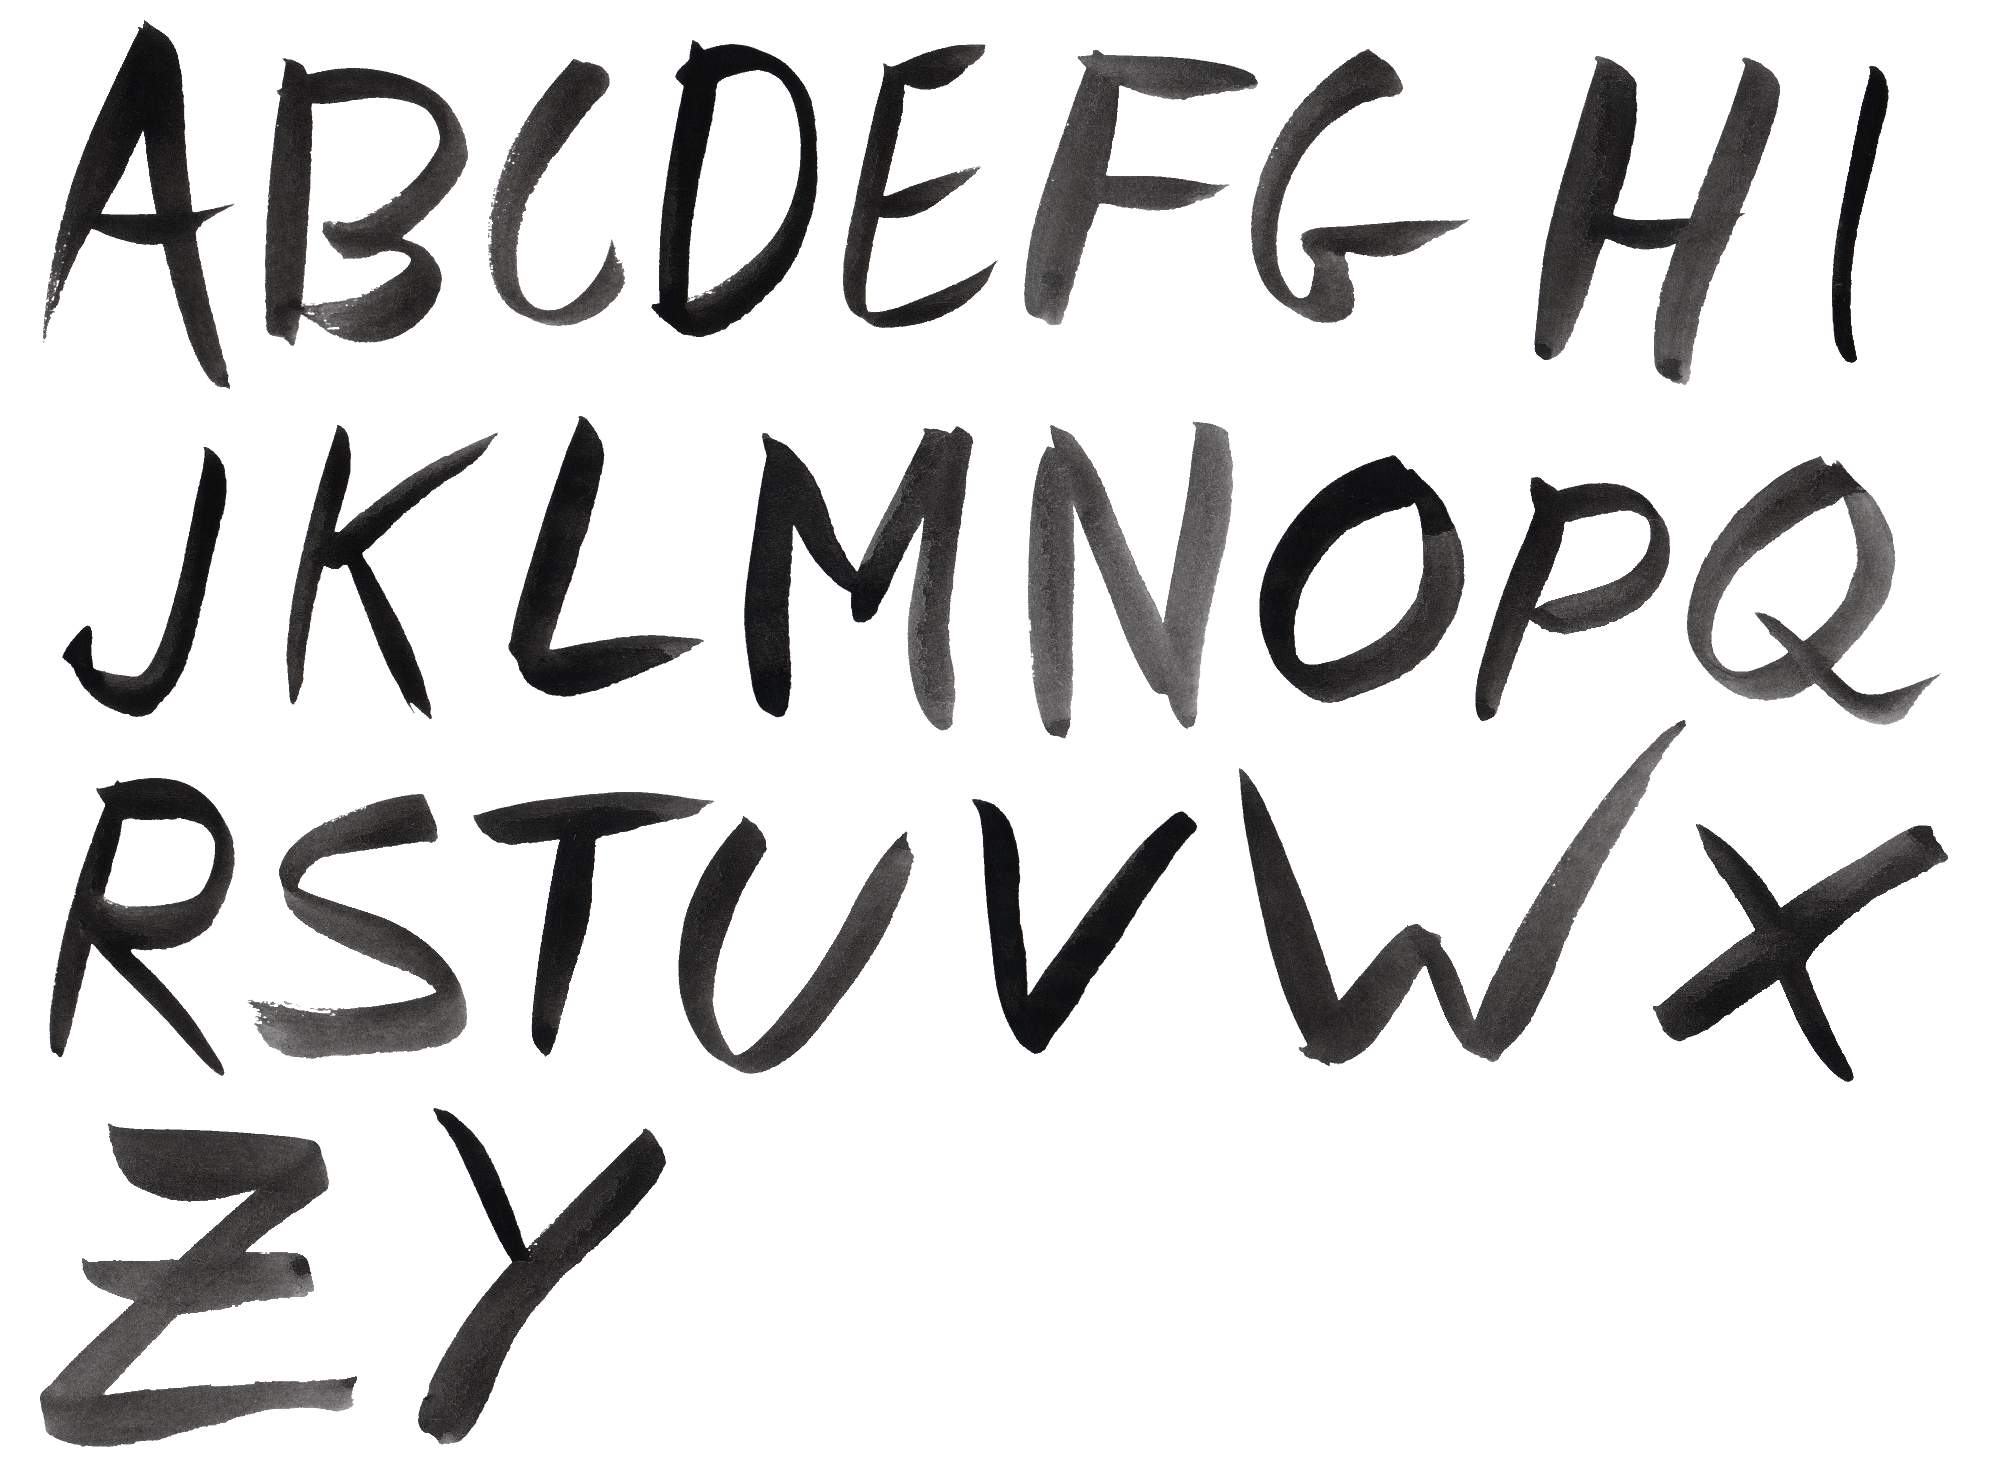 Black watercolor font alphabet png transparent onlygfx black watercolor font alphabet png transparent thecheapjerseys Choice Image